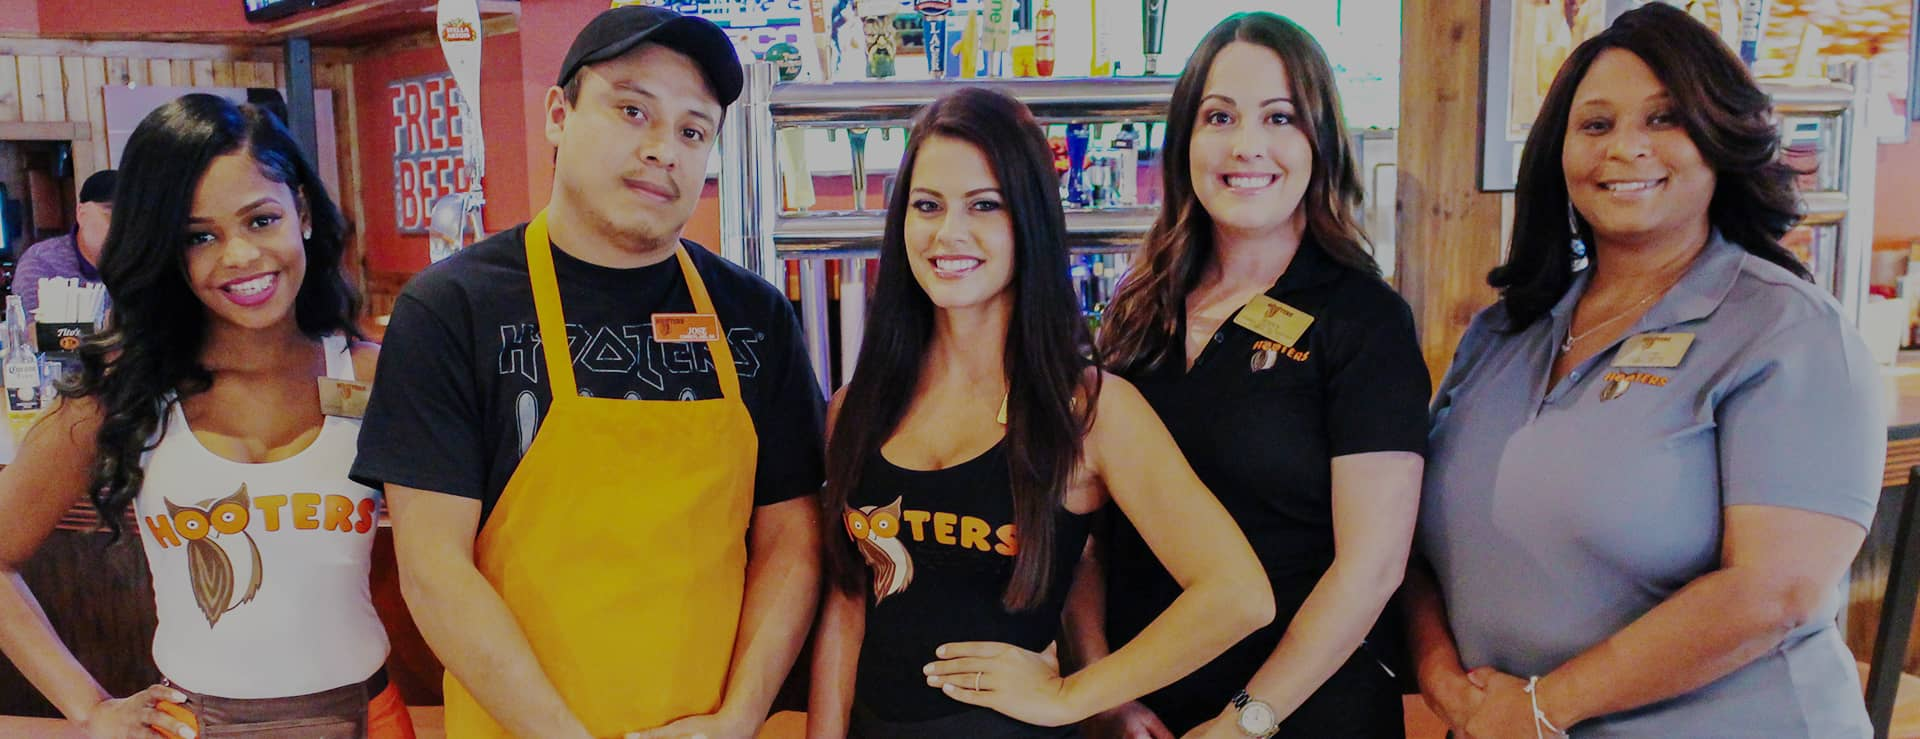 af9ade1ad3017 Full-Time   Part-Time Jobs at Hooters